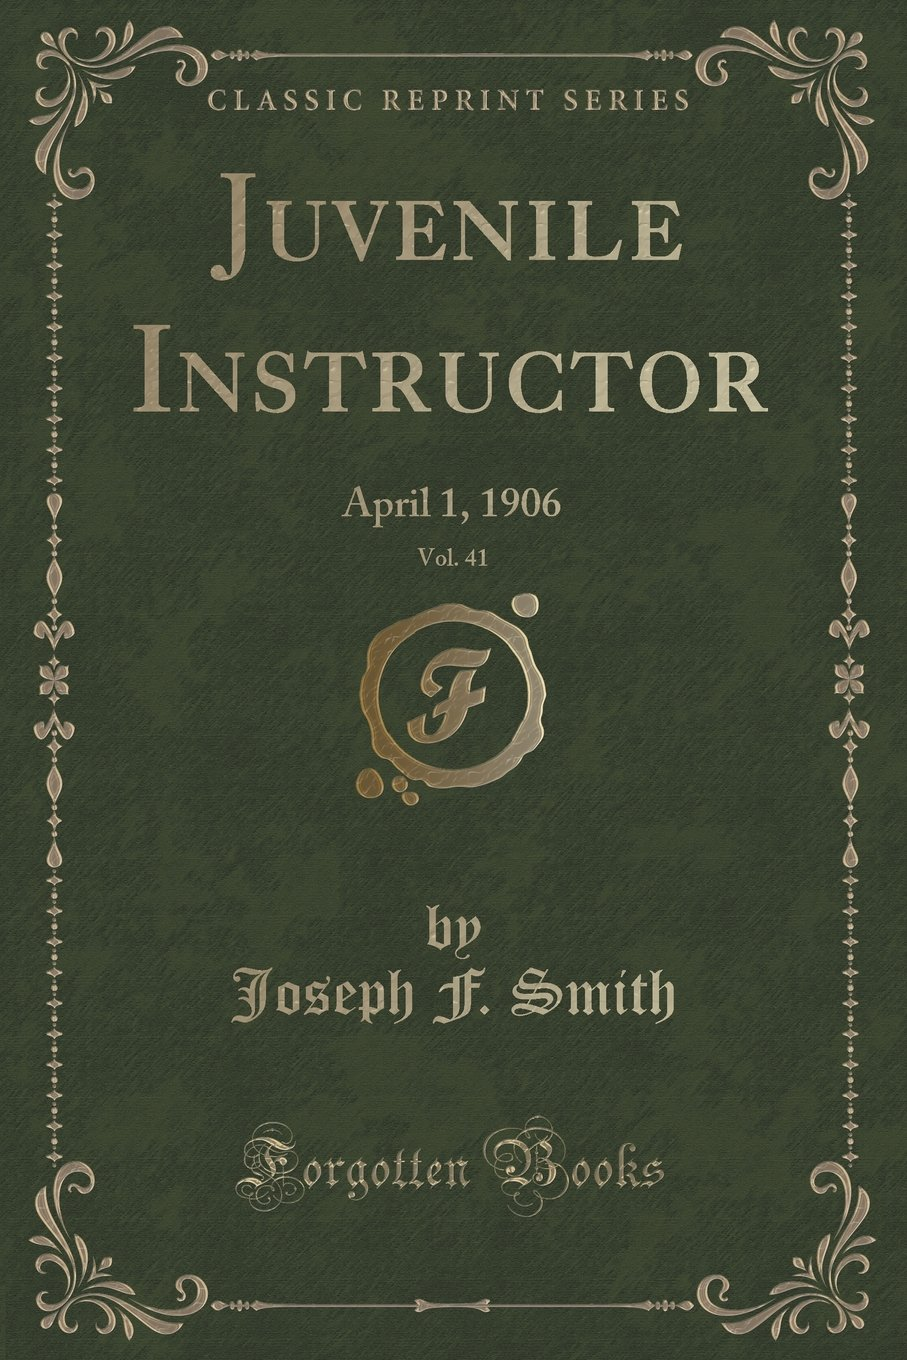 Juvenile Instructor, Vol. 41: April 1, 1906 (Classic Reprint) ebook